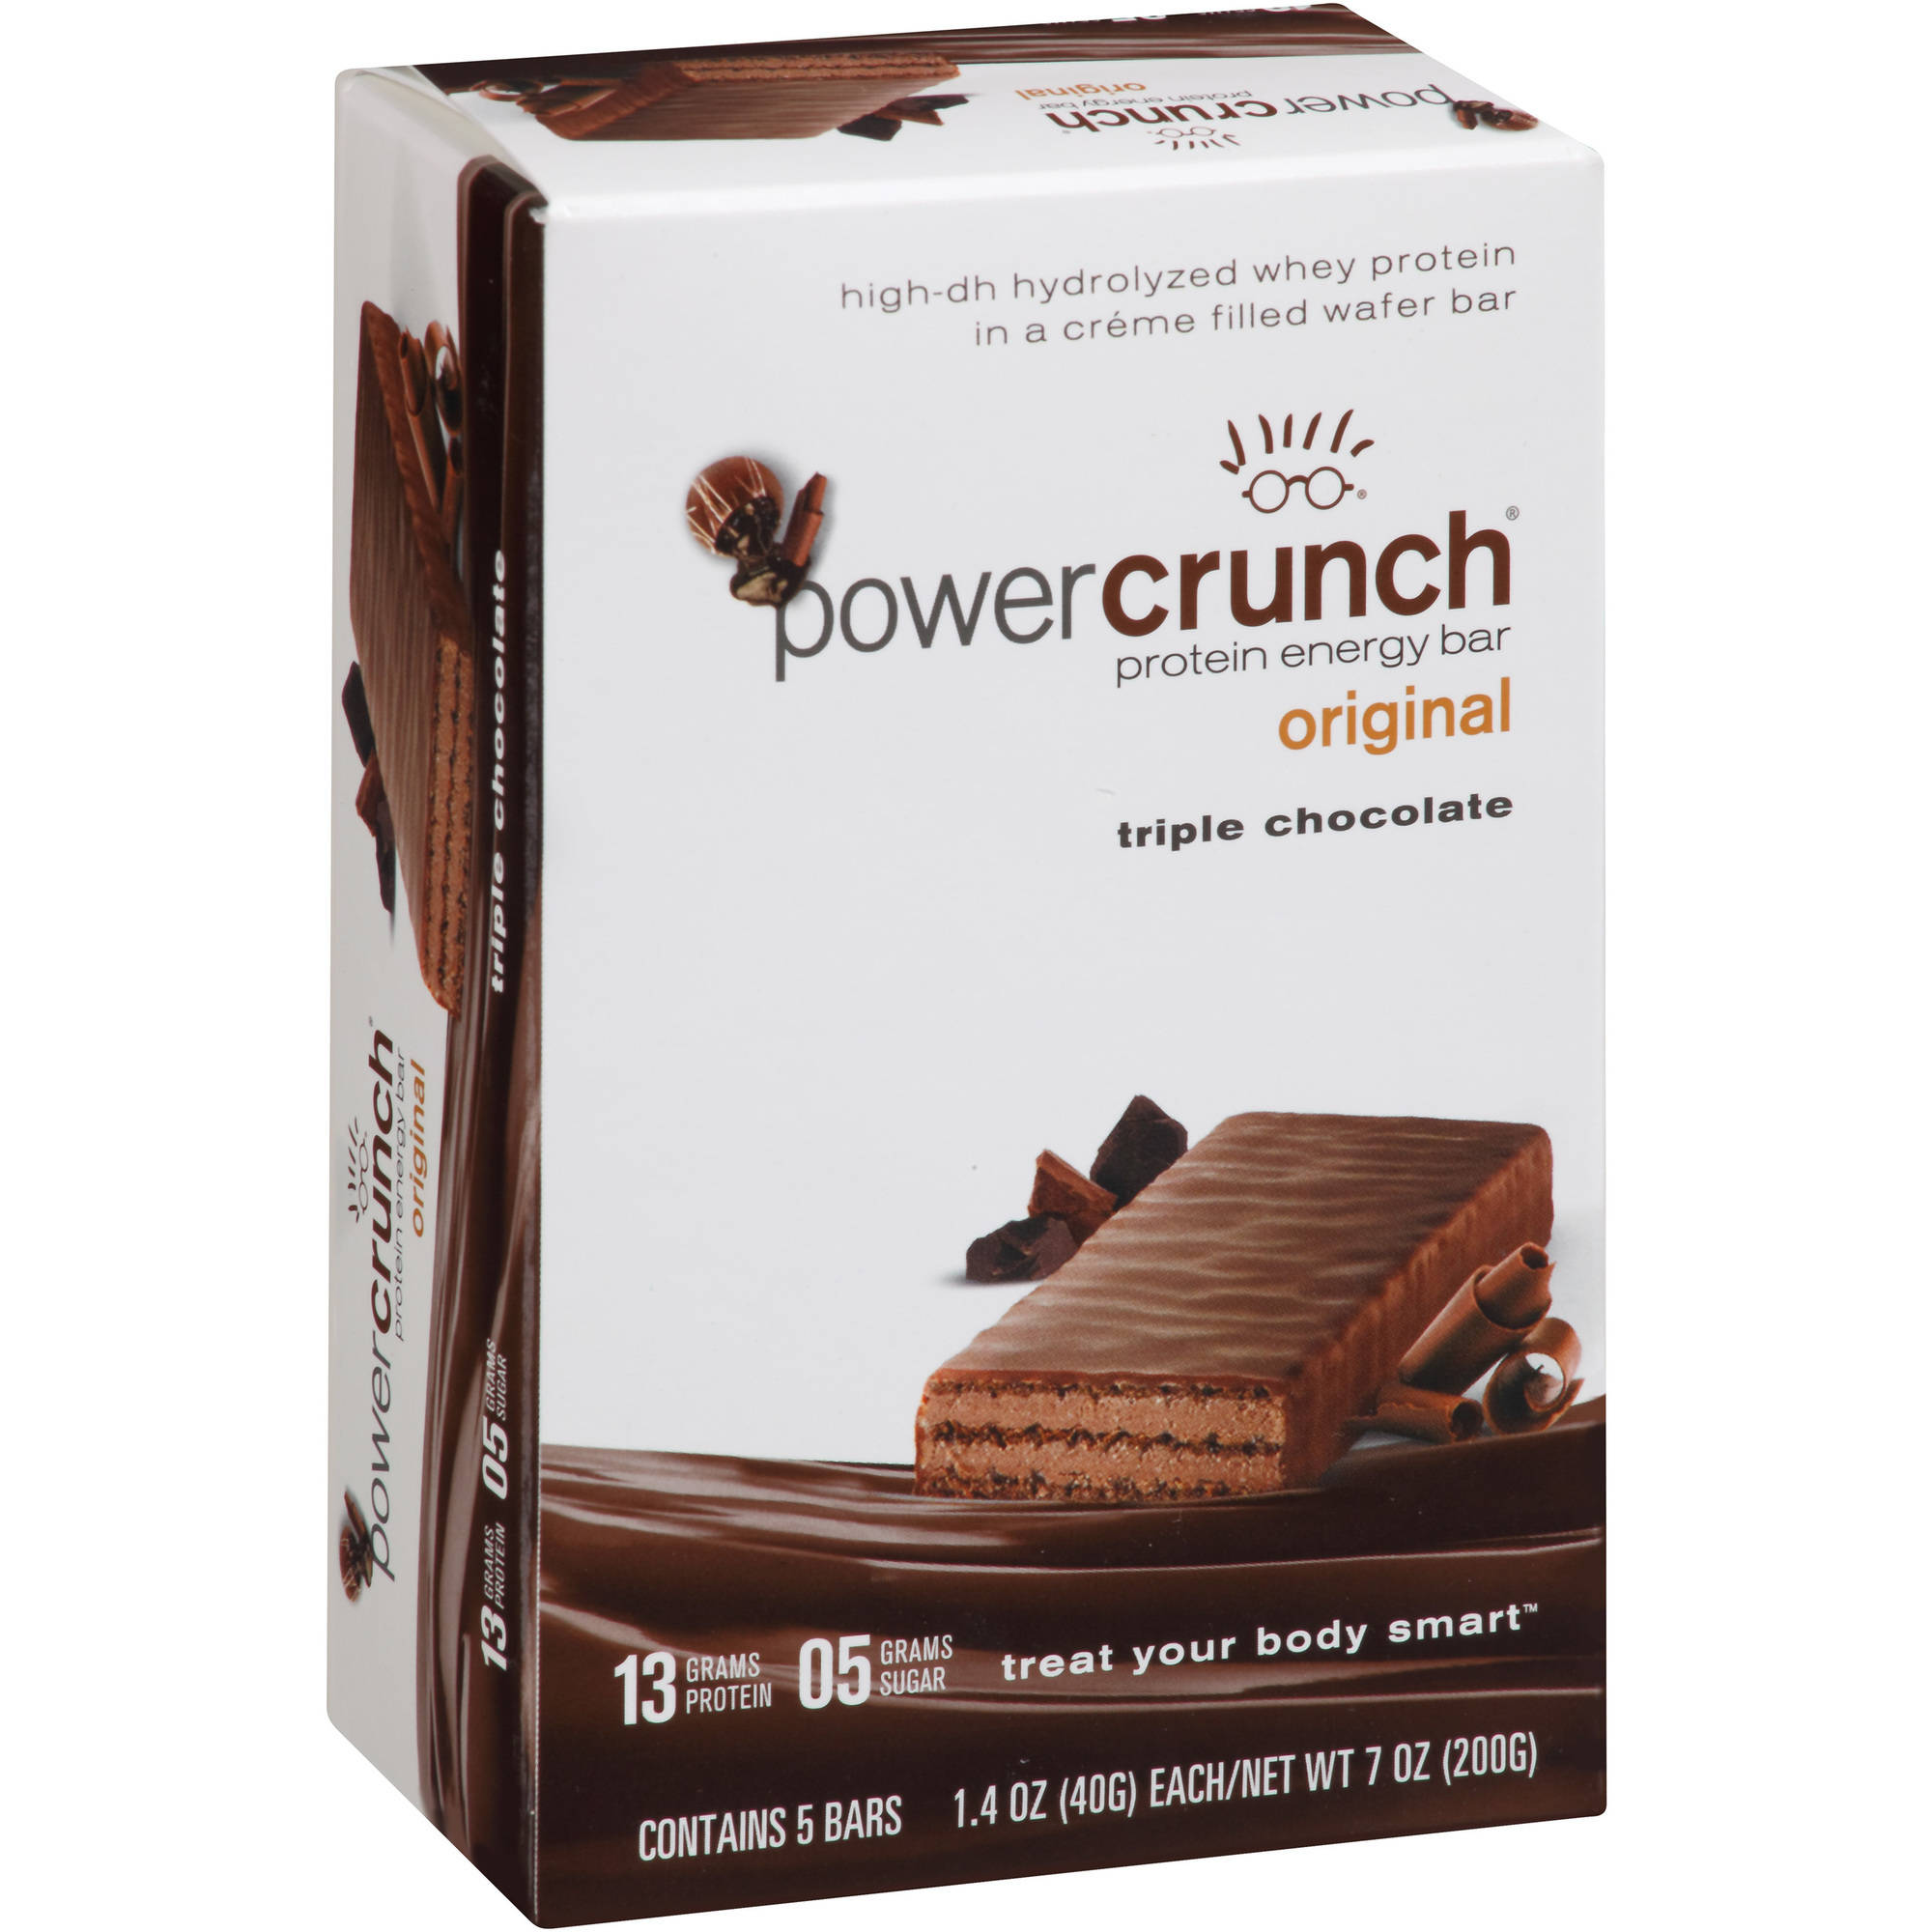 Power Crunch Original Triple Chocolate Protein Energy Bars, 1.4 oz, 5 count